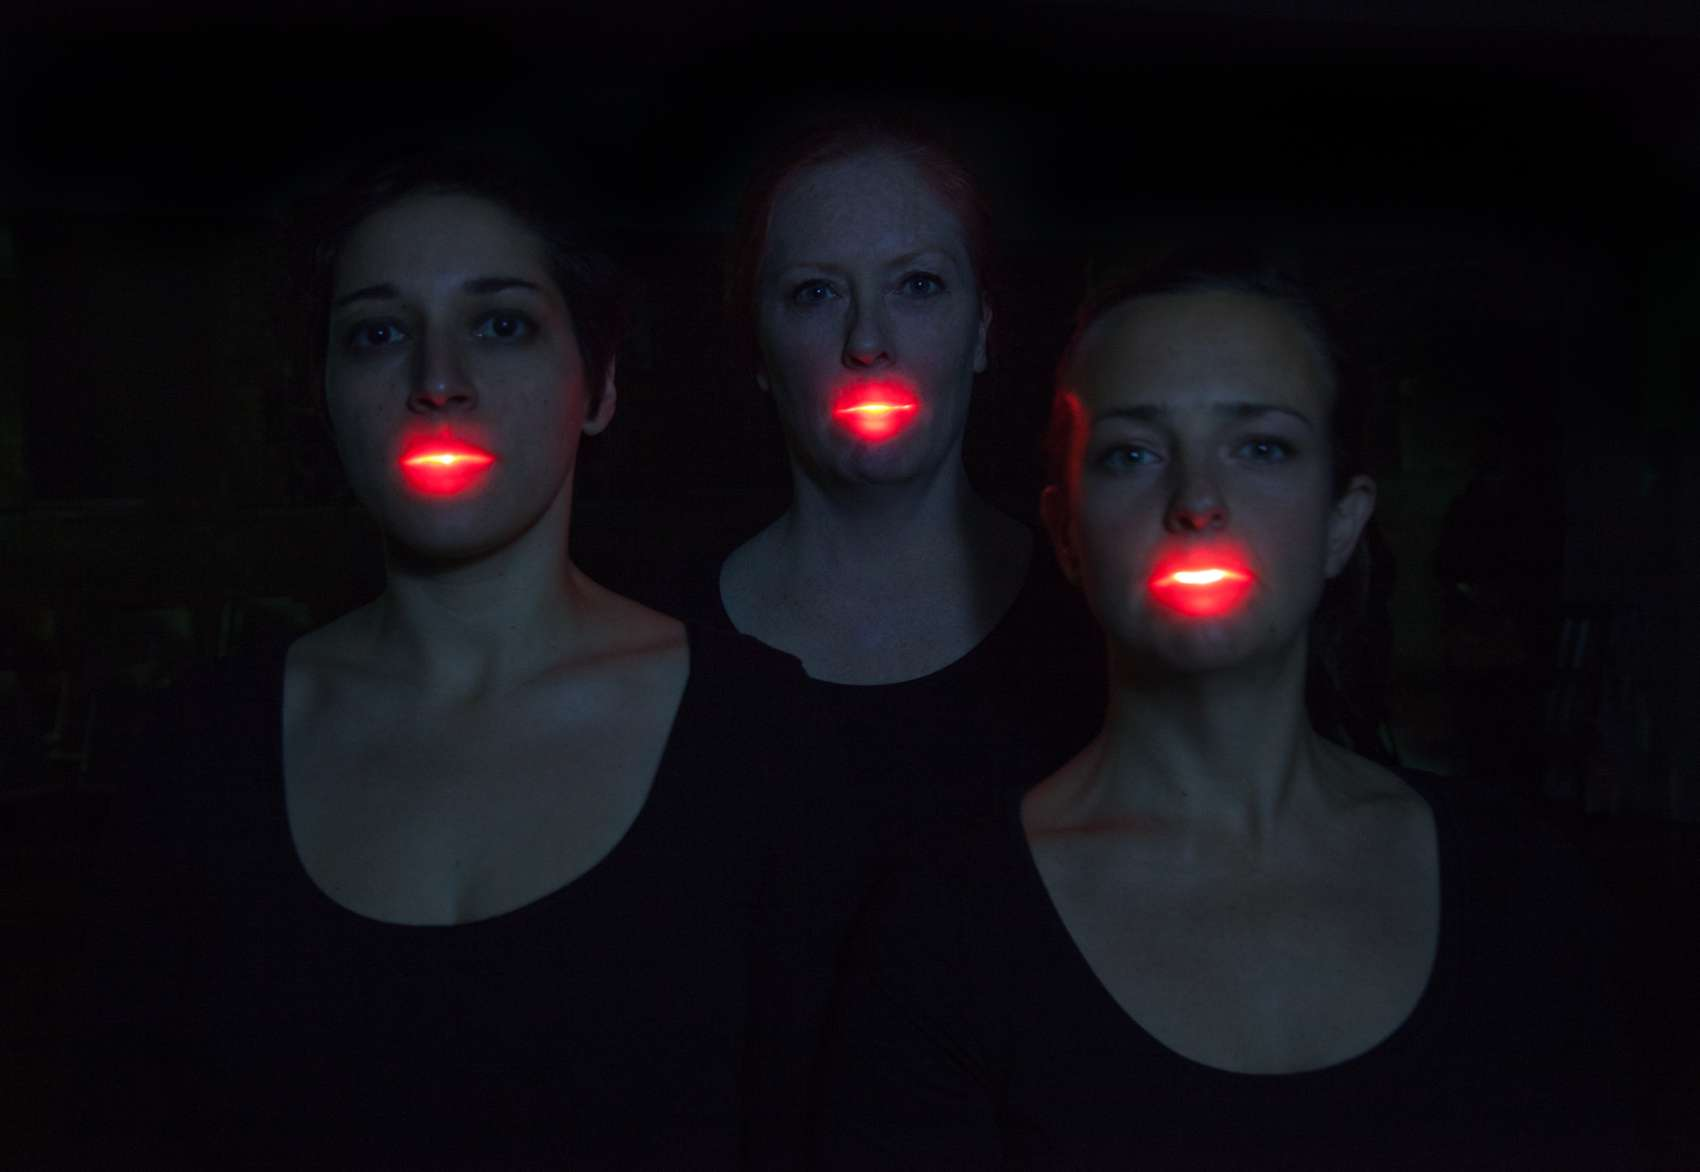 Head and shoulders of three women with illuminated mouths against a dark background